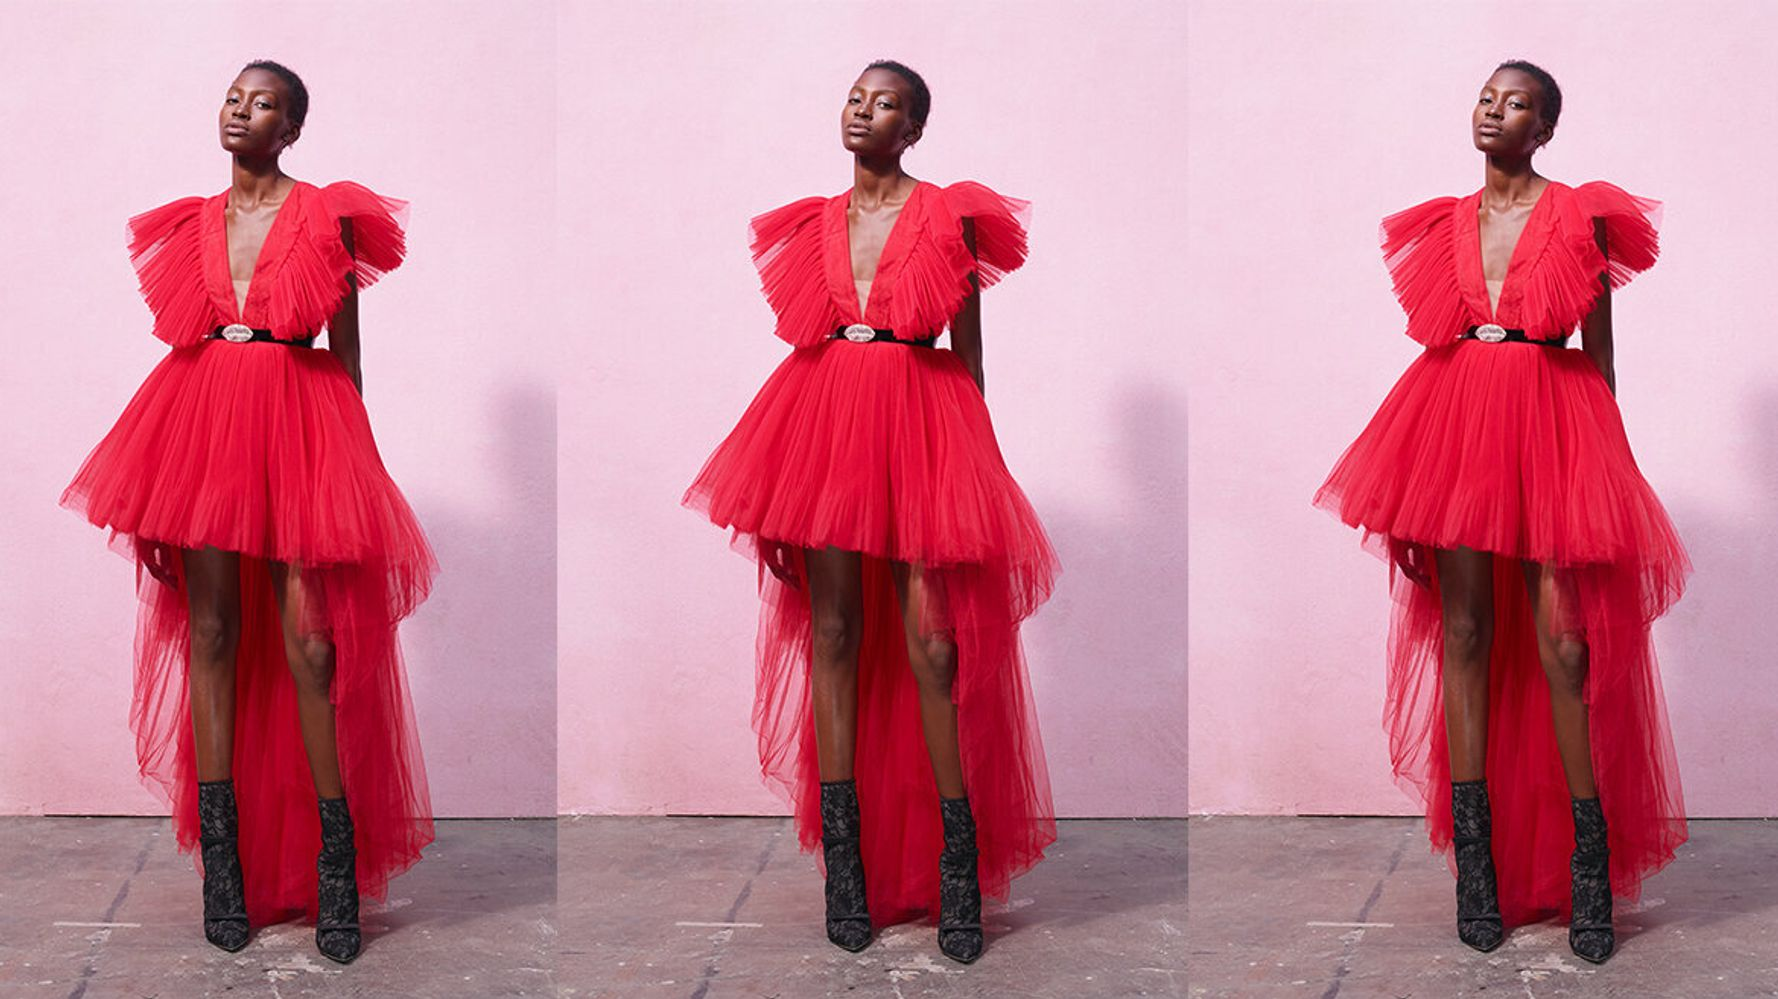 H&M x Giambattista Valli Collection - Here's Your First Look